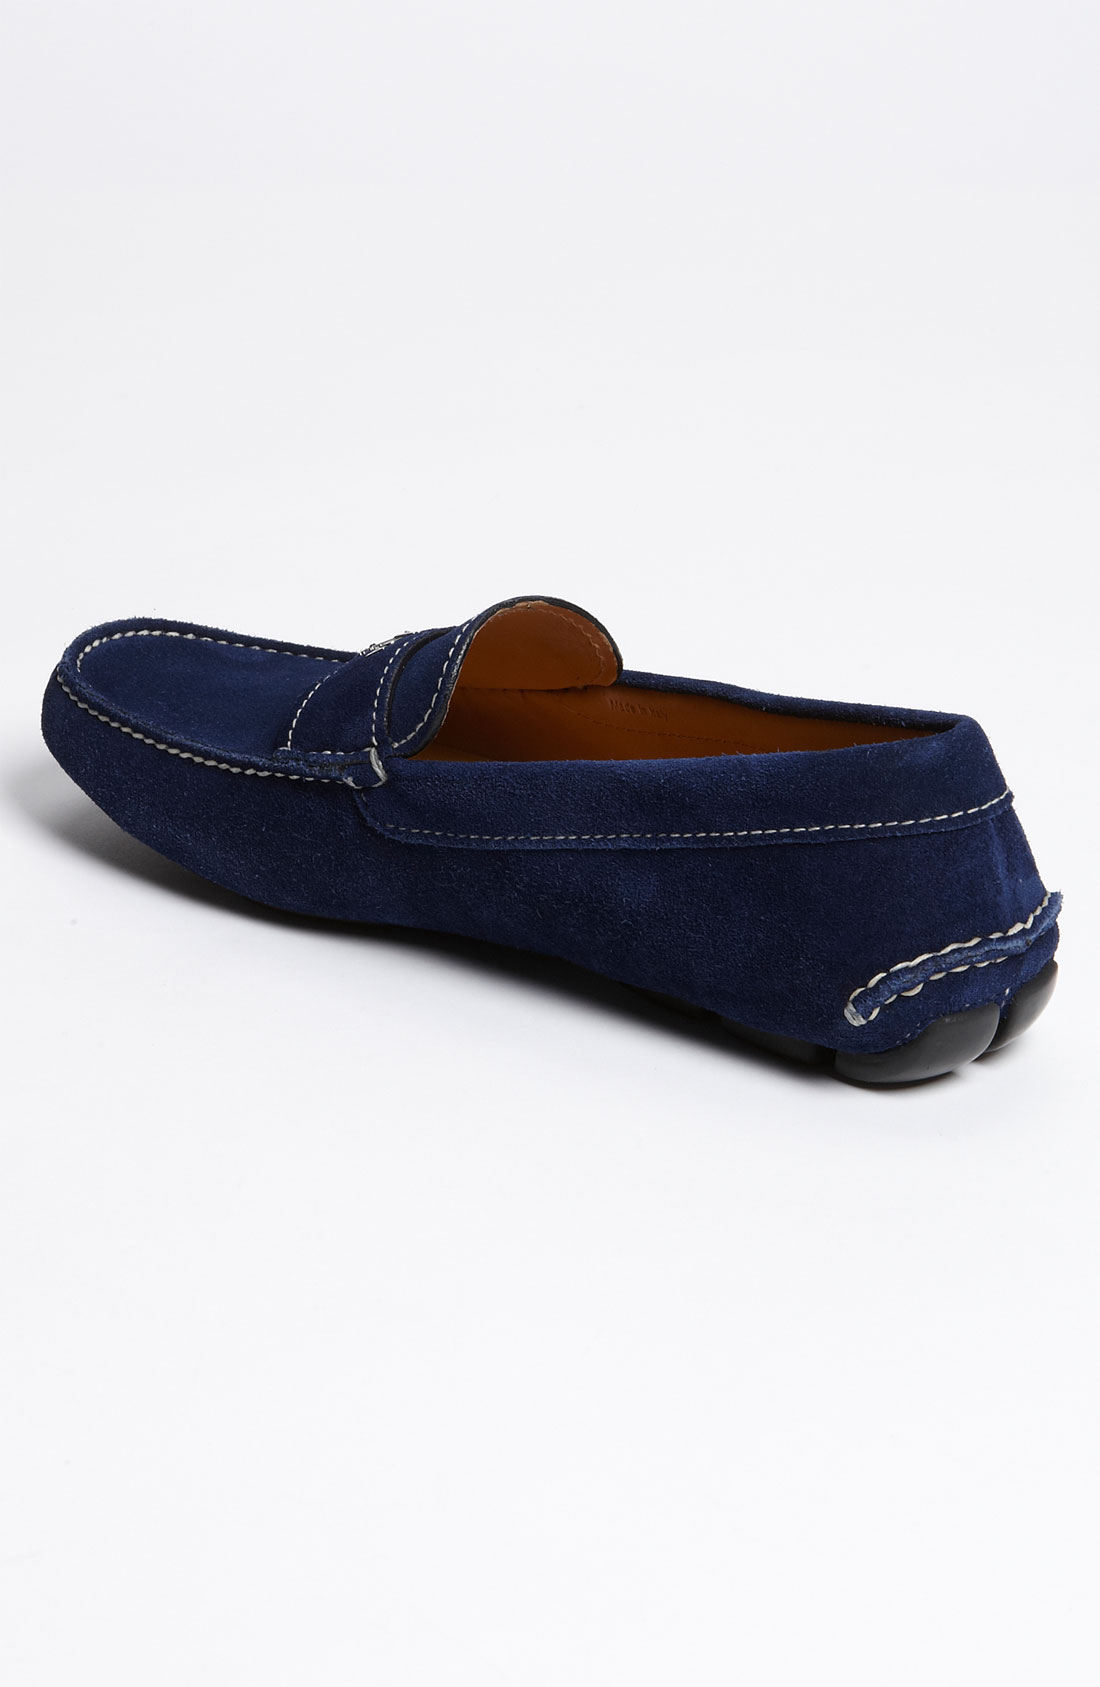 Sky Blue Suede Driving Shoes